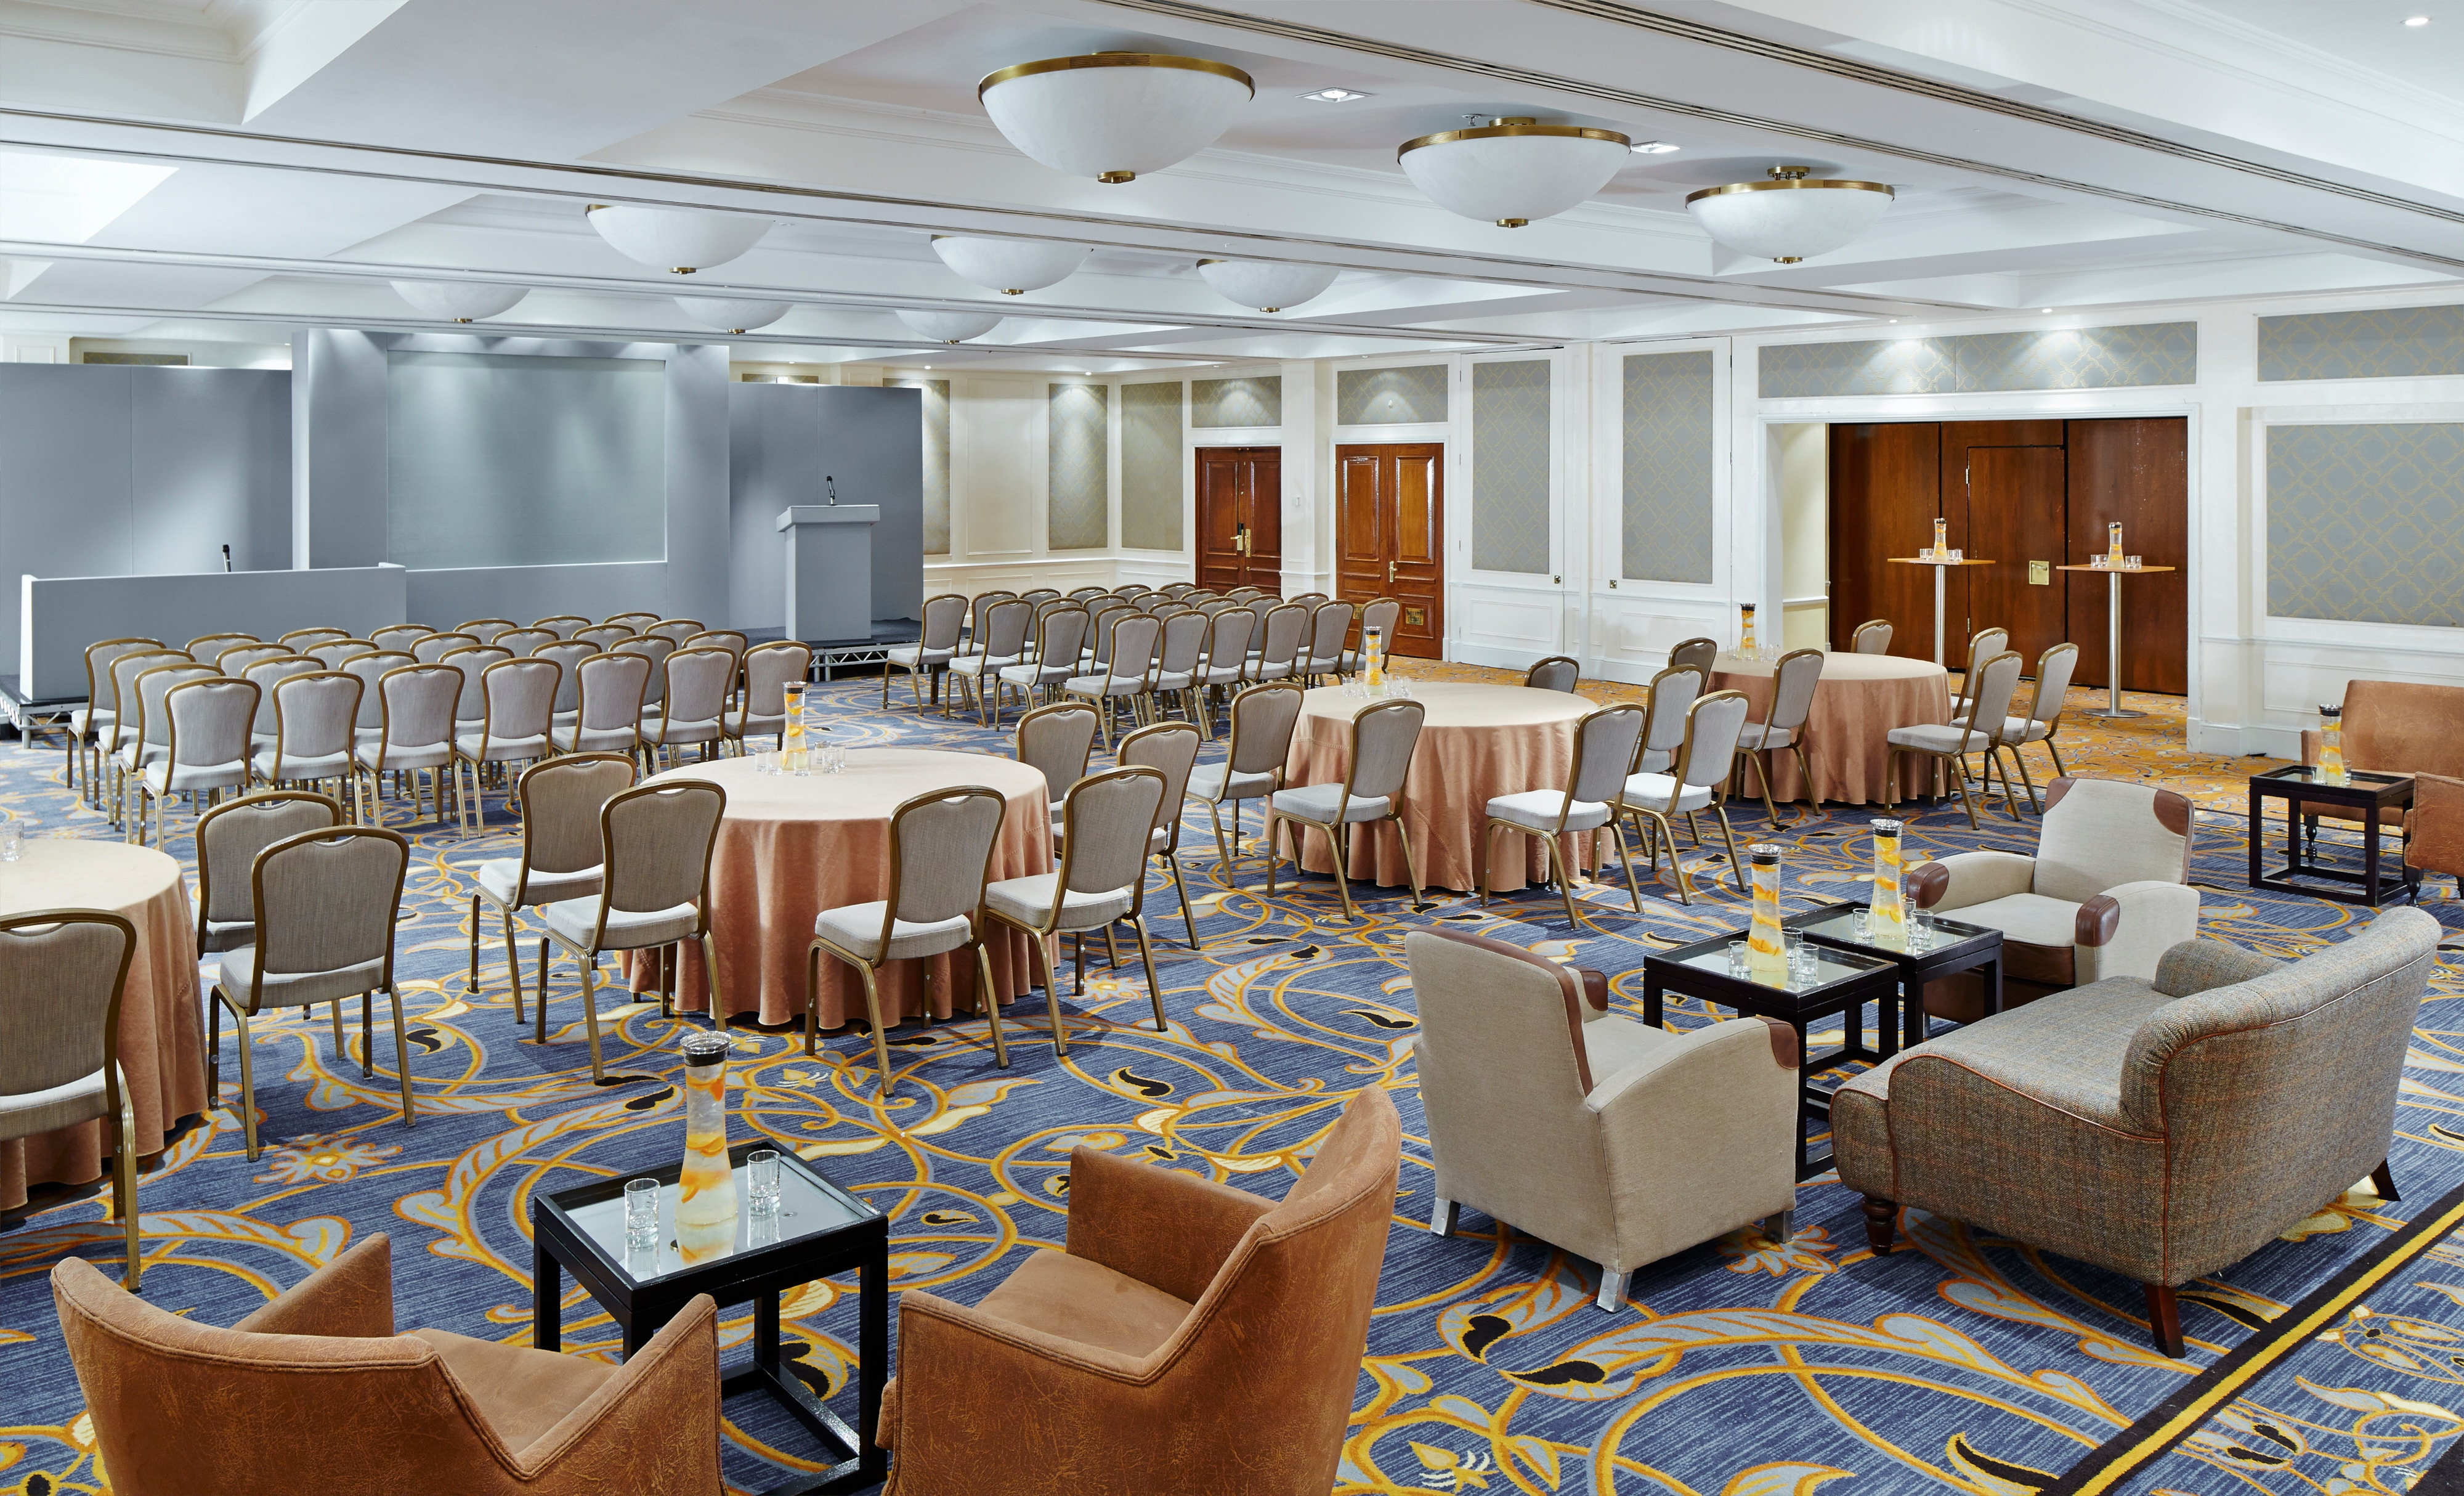 Book a business meeting at Marriott and receive free golf, free nights or free flights.